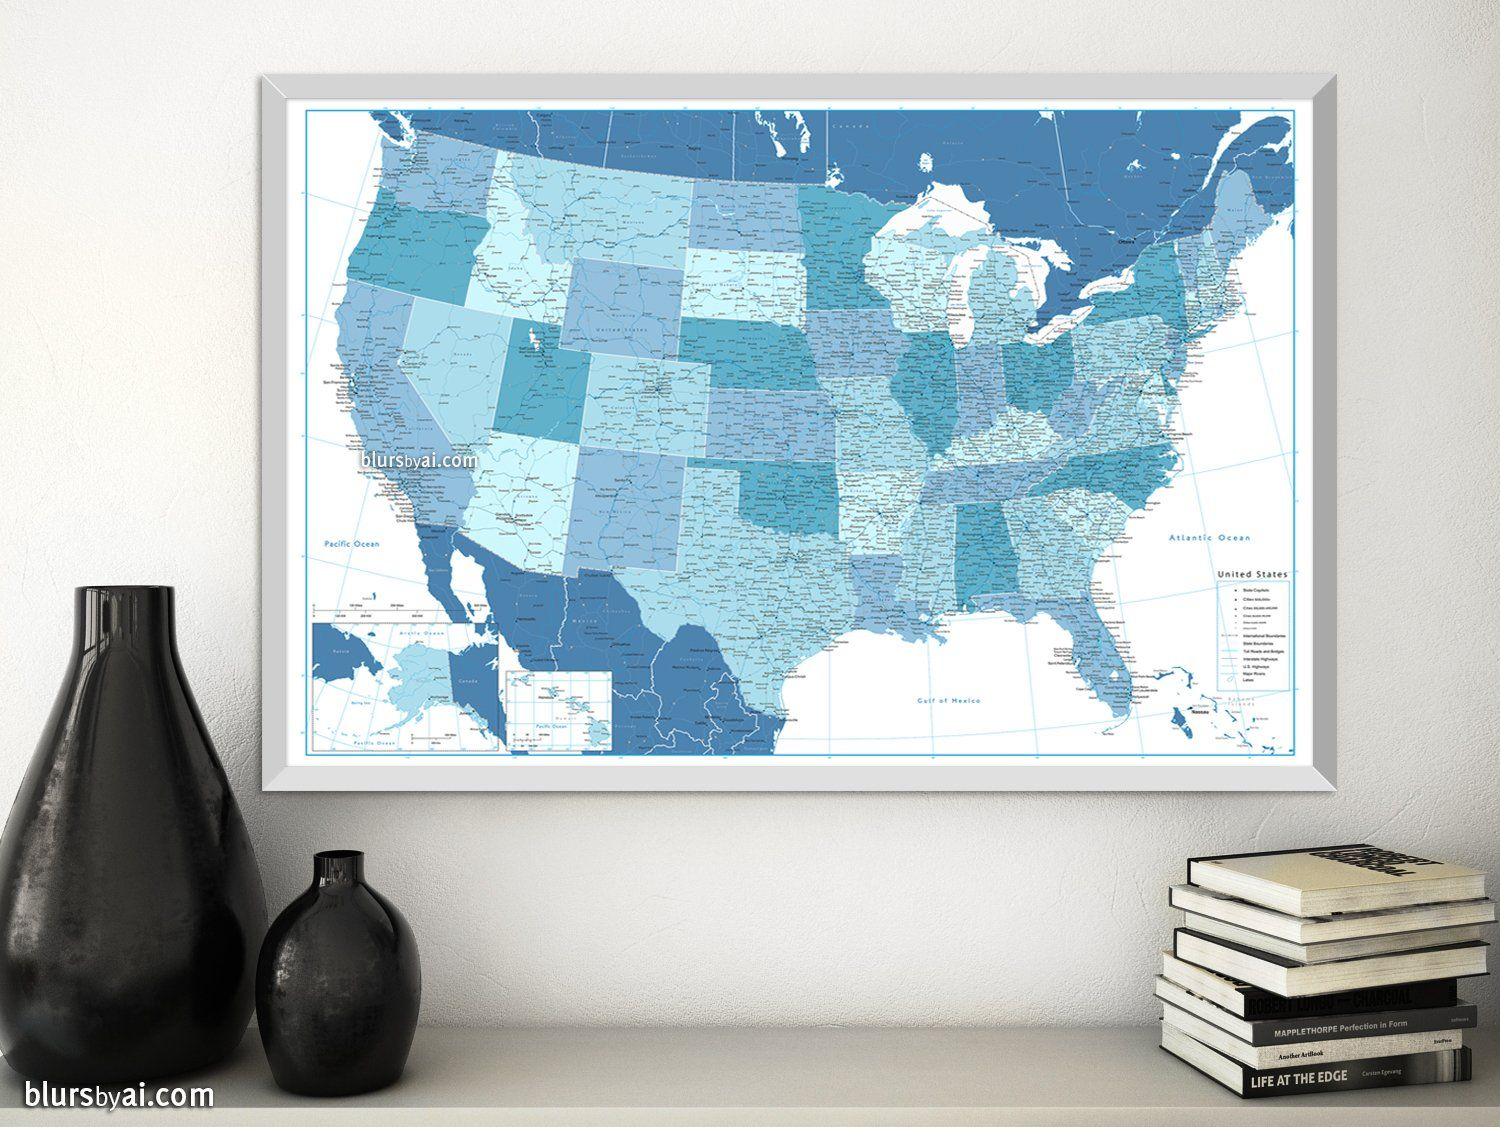 Personalized Us Map.Personalized Us Map Print Highly Detailed Map Of The Us With Roads